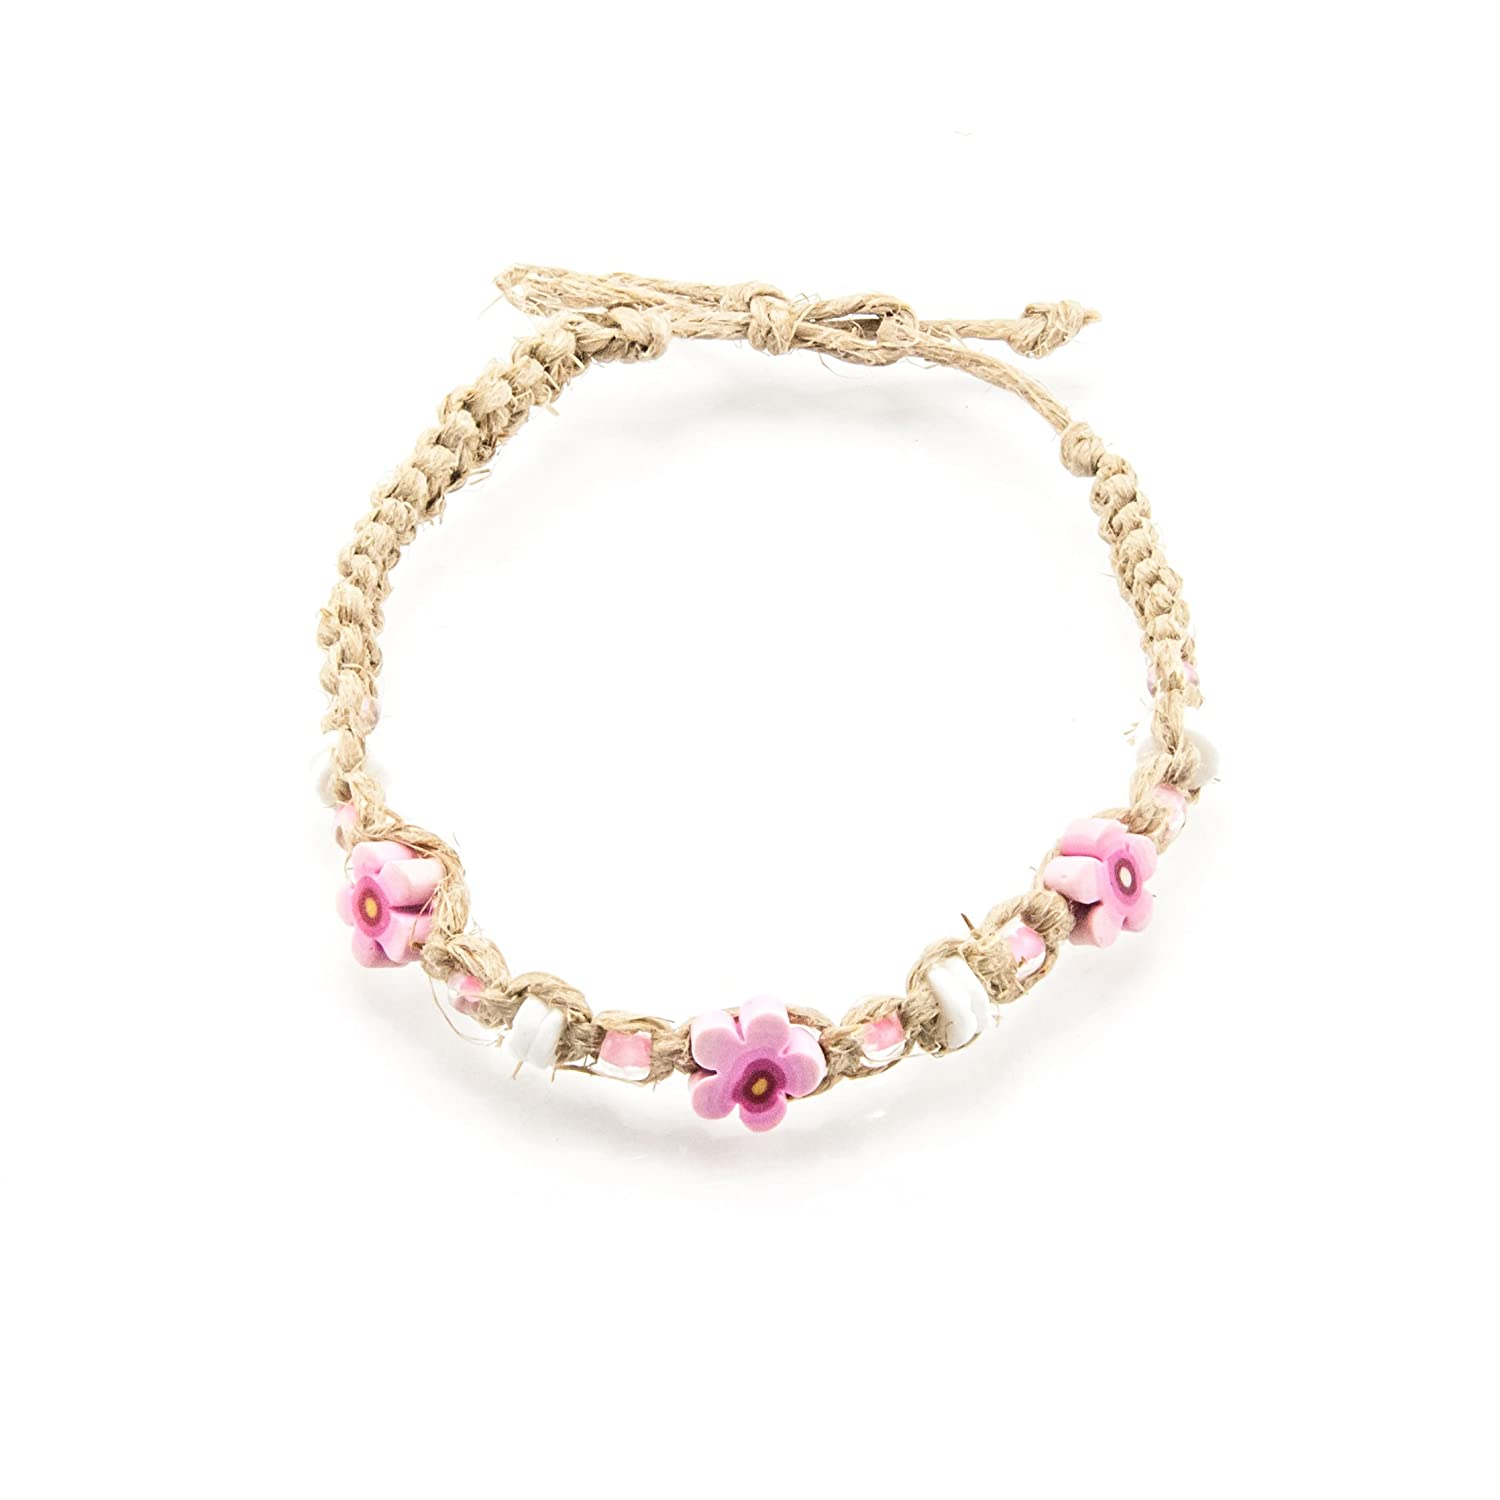 BlueRica Hemp Anklet Bracelet with Puka Shells Glass Beads and Pink Fimo Flowers